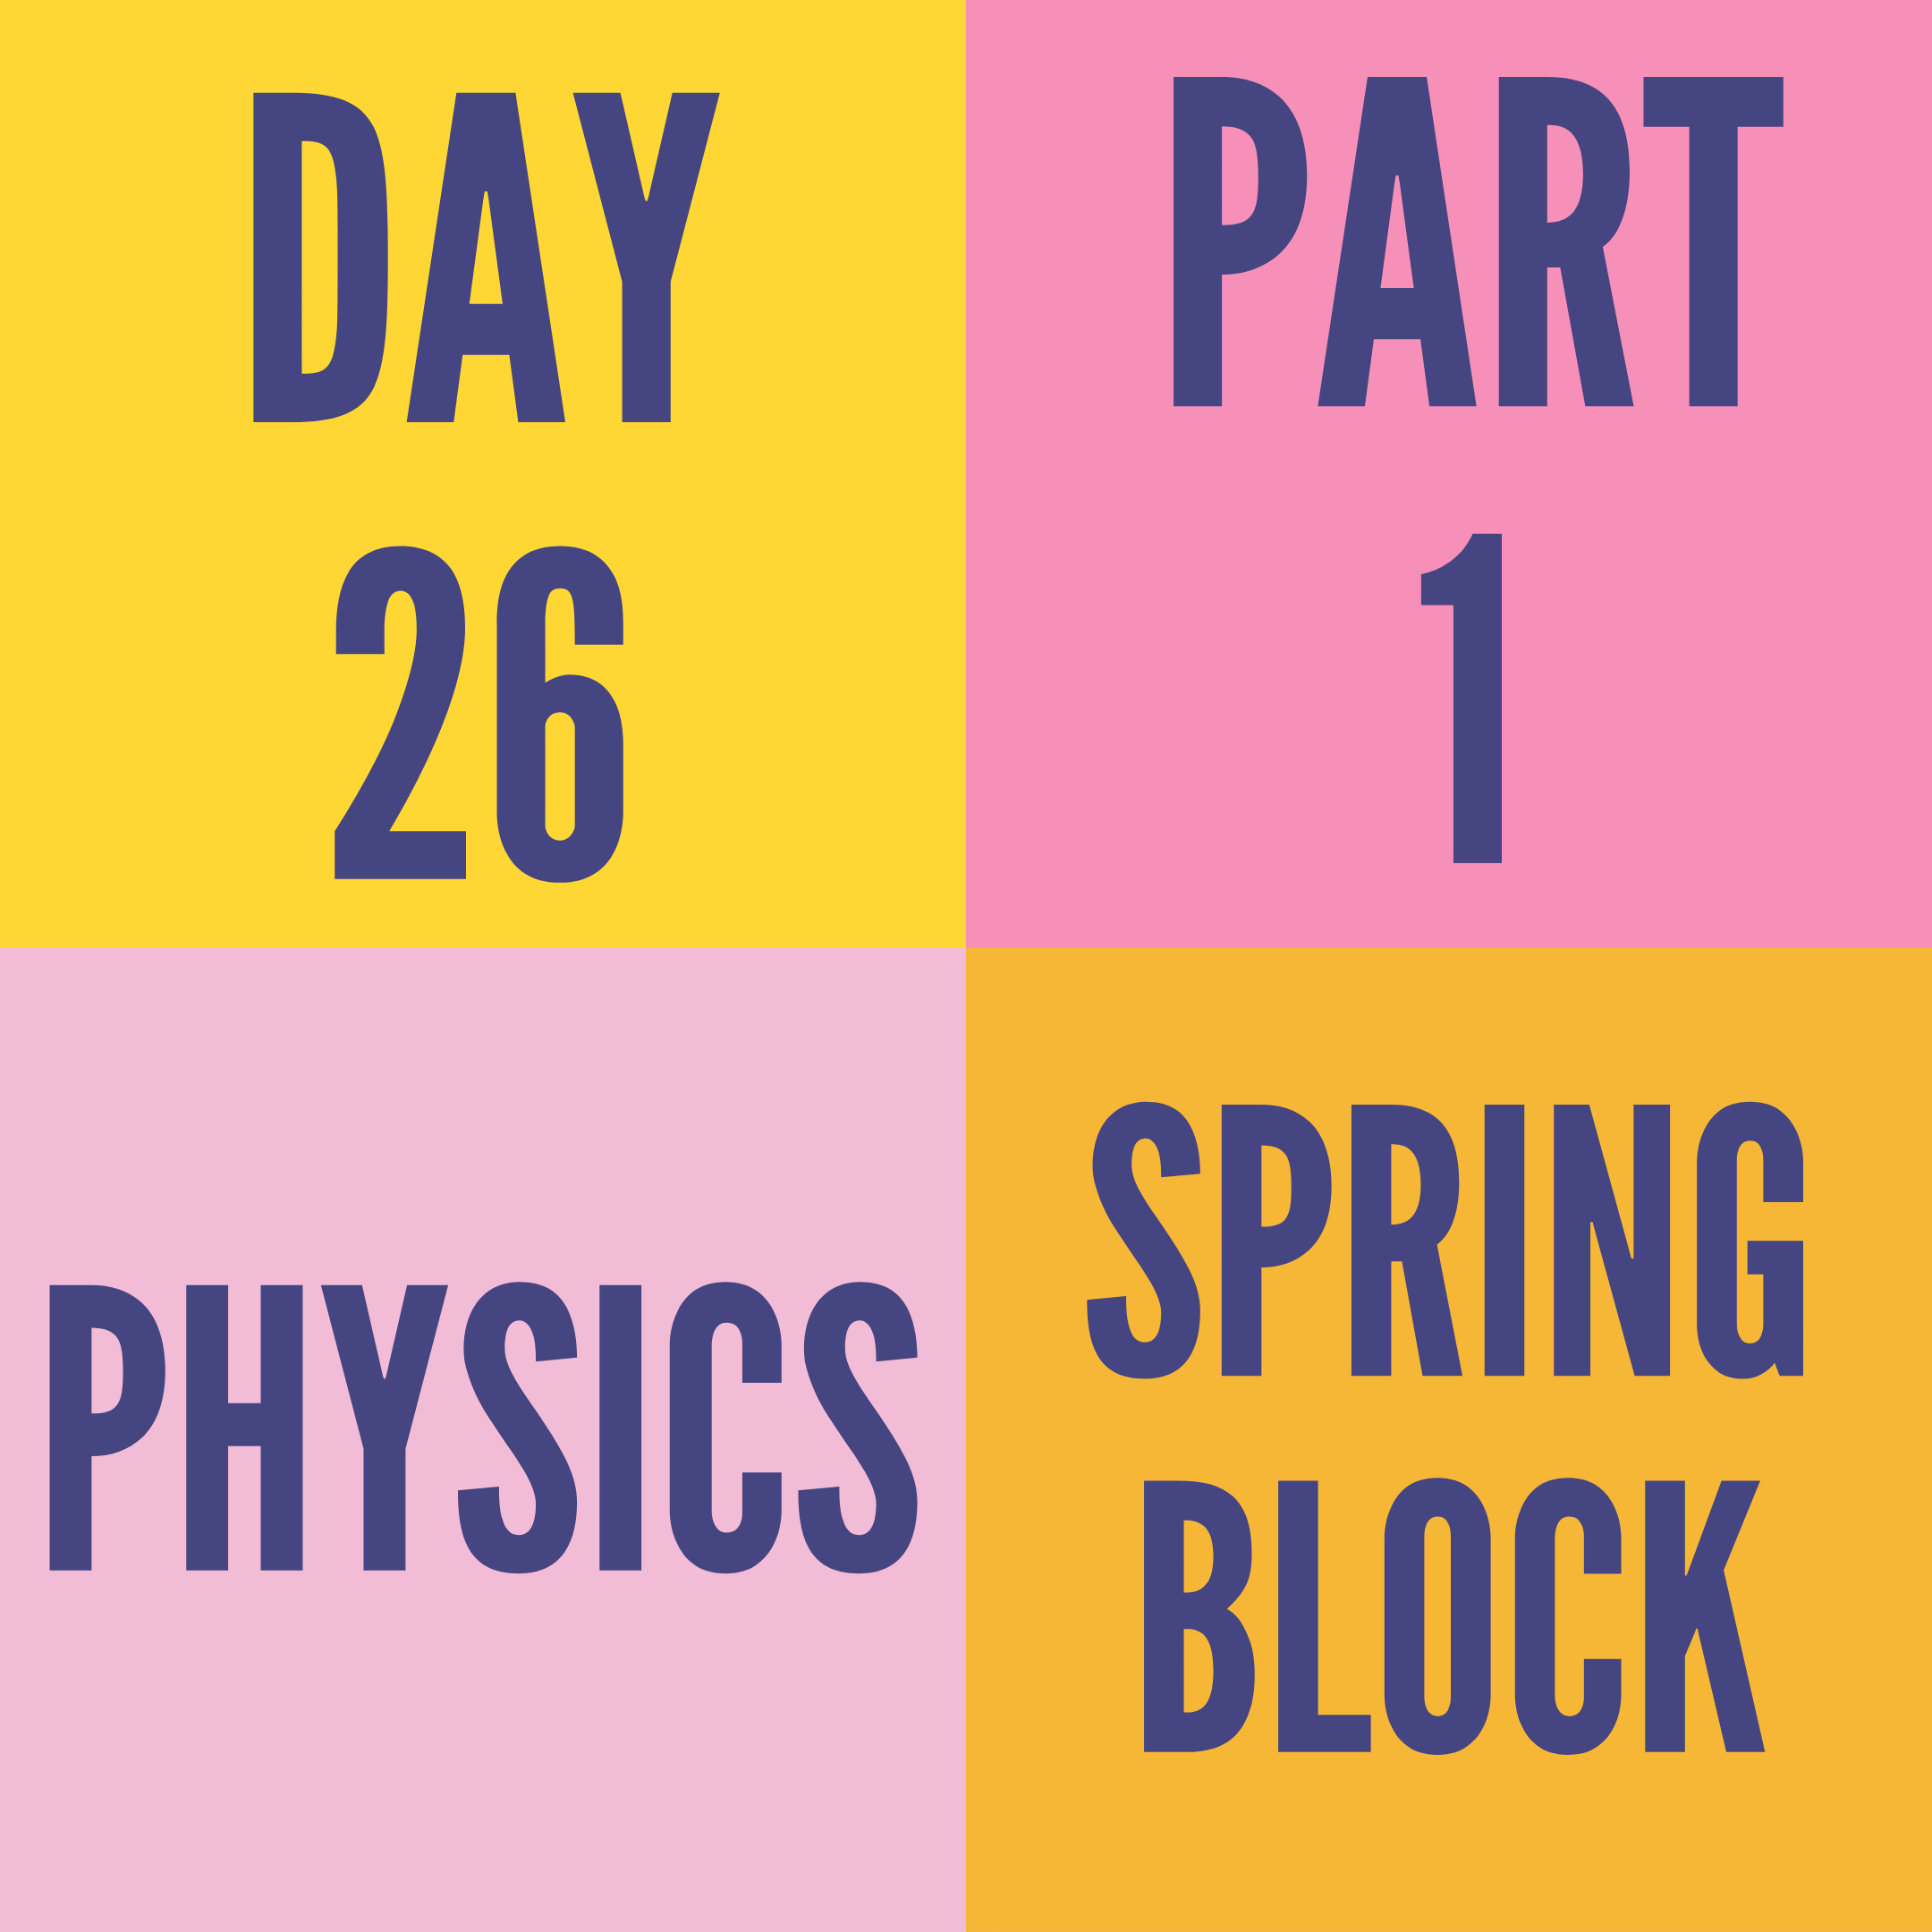 DAY-26 PART-1 SPRING BLOCK